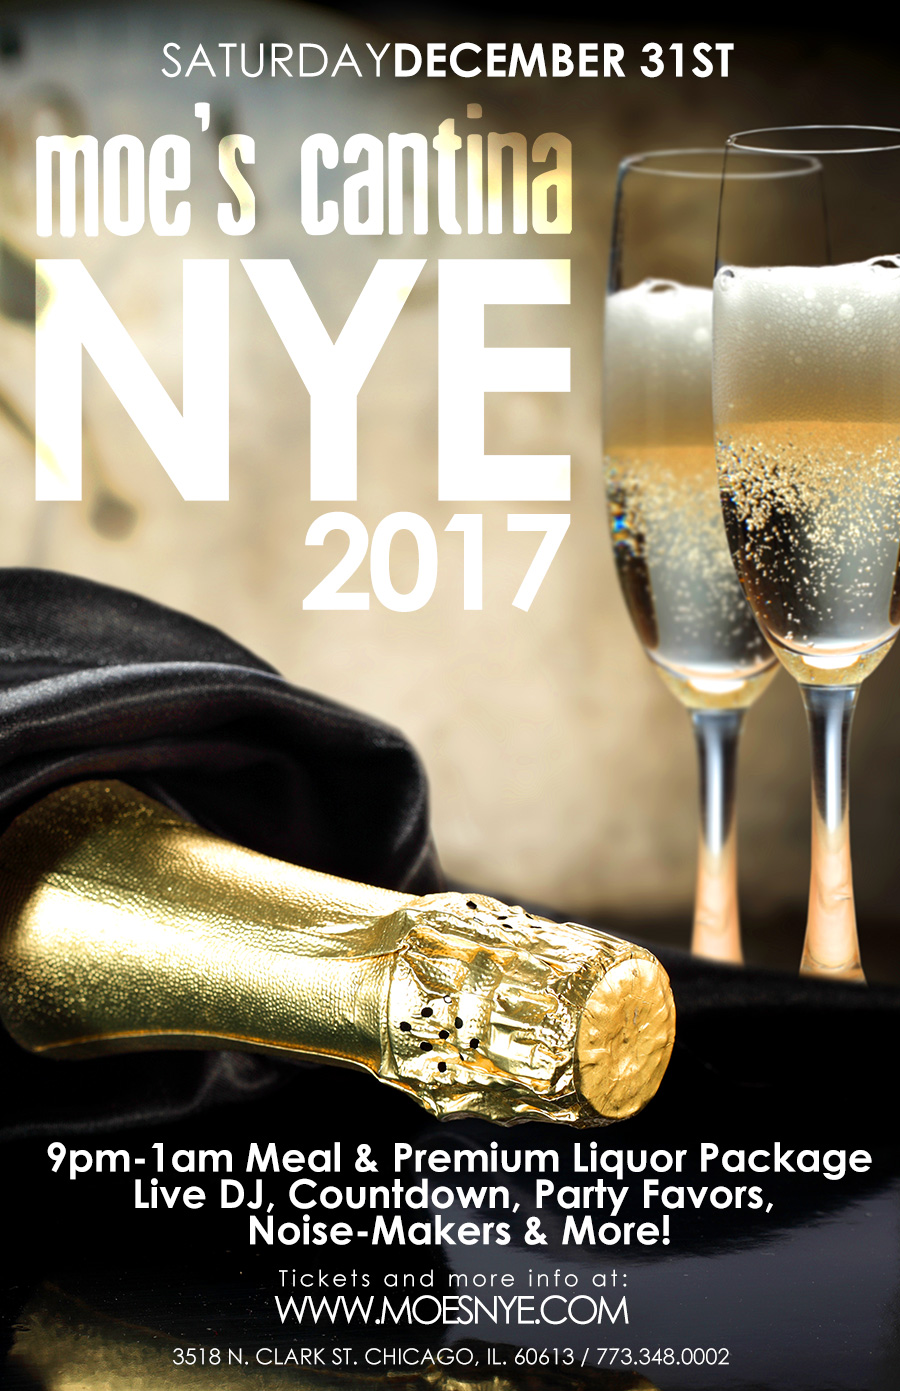 Moe's Cantina Wrigleyville New Year's Eve Party - Join us at the best cantina in Wrigleyville for a Countdown, Party Favors & More!